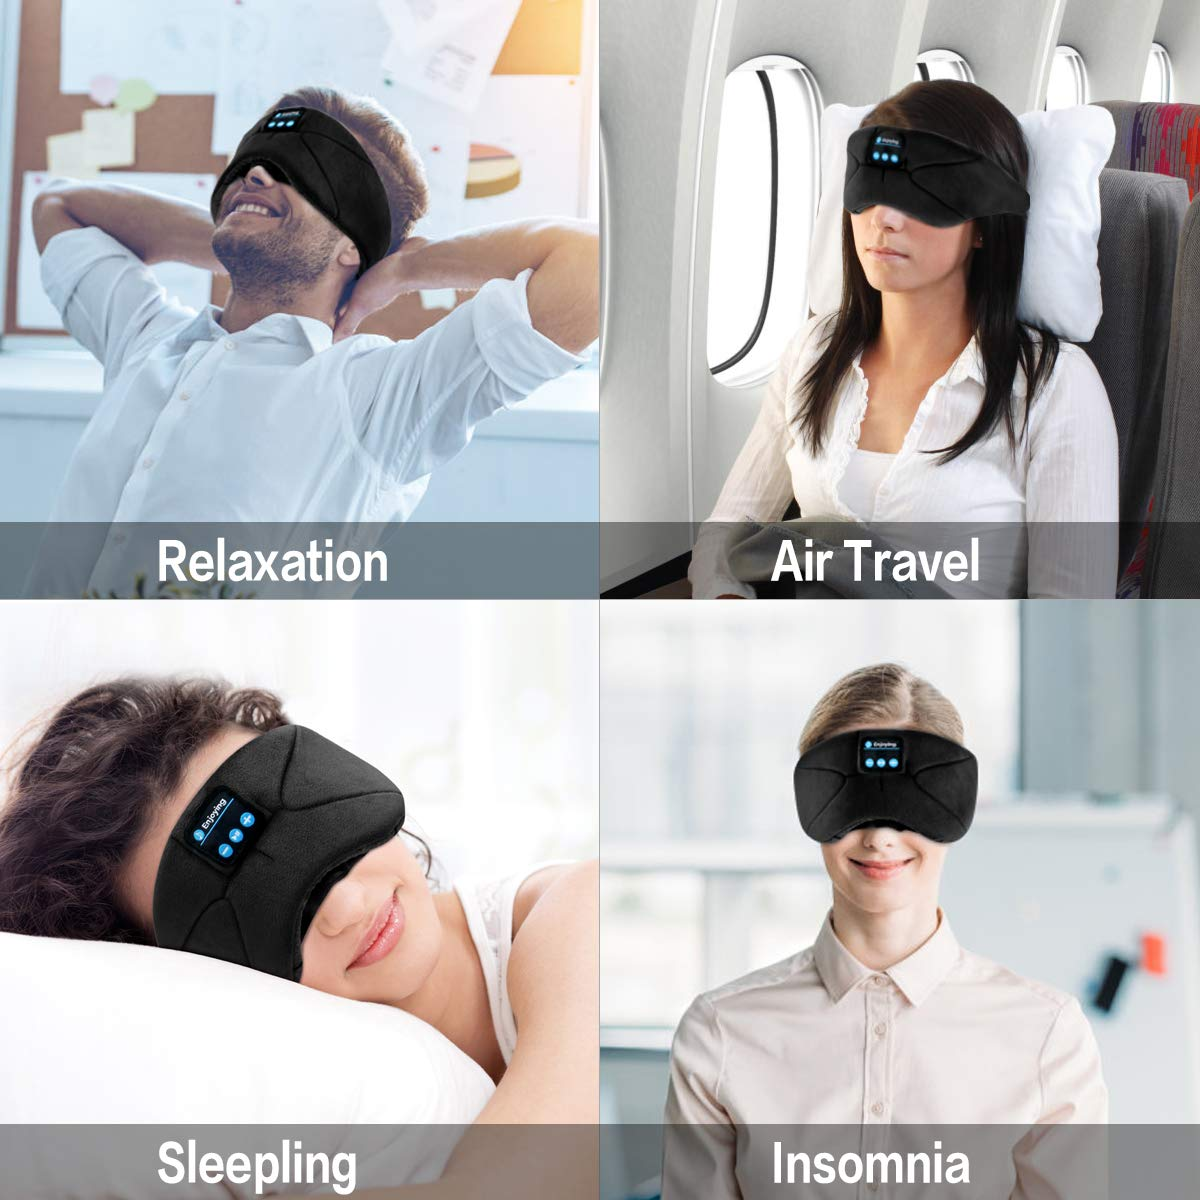 Bluetooth Sleep Eye Mask with Headphones,WUMINGLU Wireless Bluetooth 4.2 Sleeping Eye shades Handsfree Music Headset Built-in Speakers Microphone Washable for Travel Siesta(Upgrade)